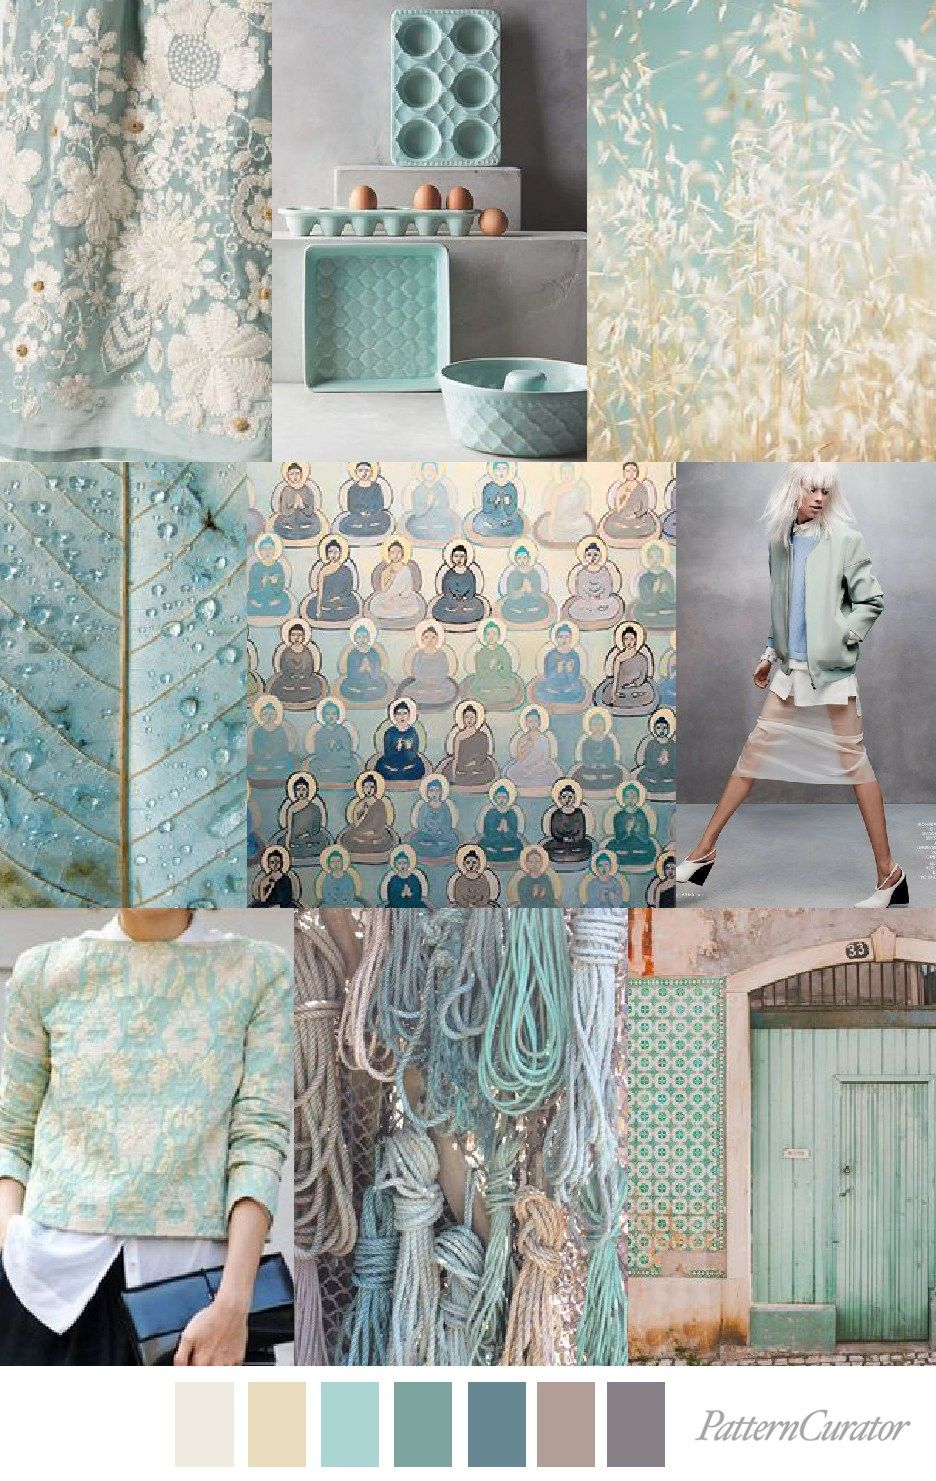 Home Decor Trend Forecast For 2018: TRANQUIL TEAL (pattern Curator)